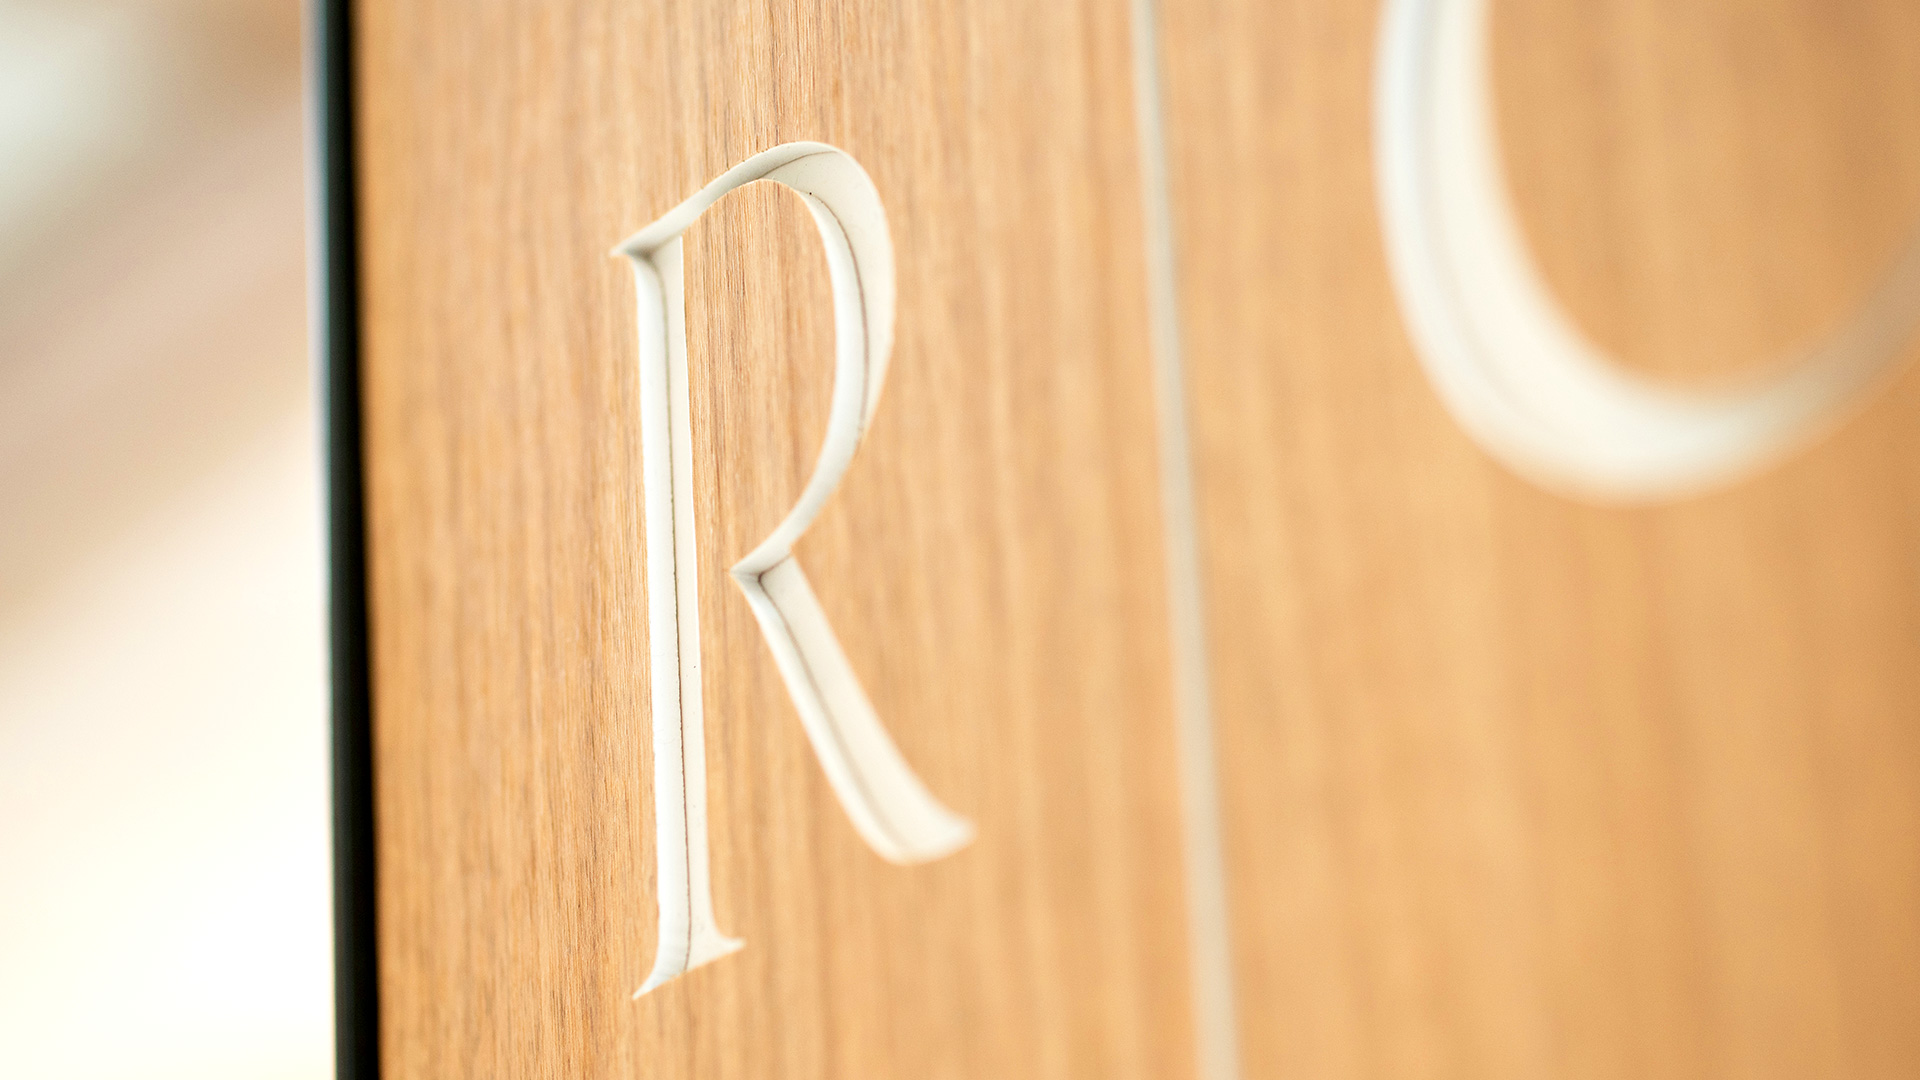 Close up of the R on the Rosedale Center sign